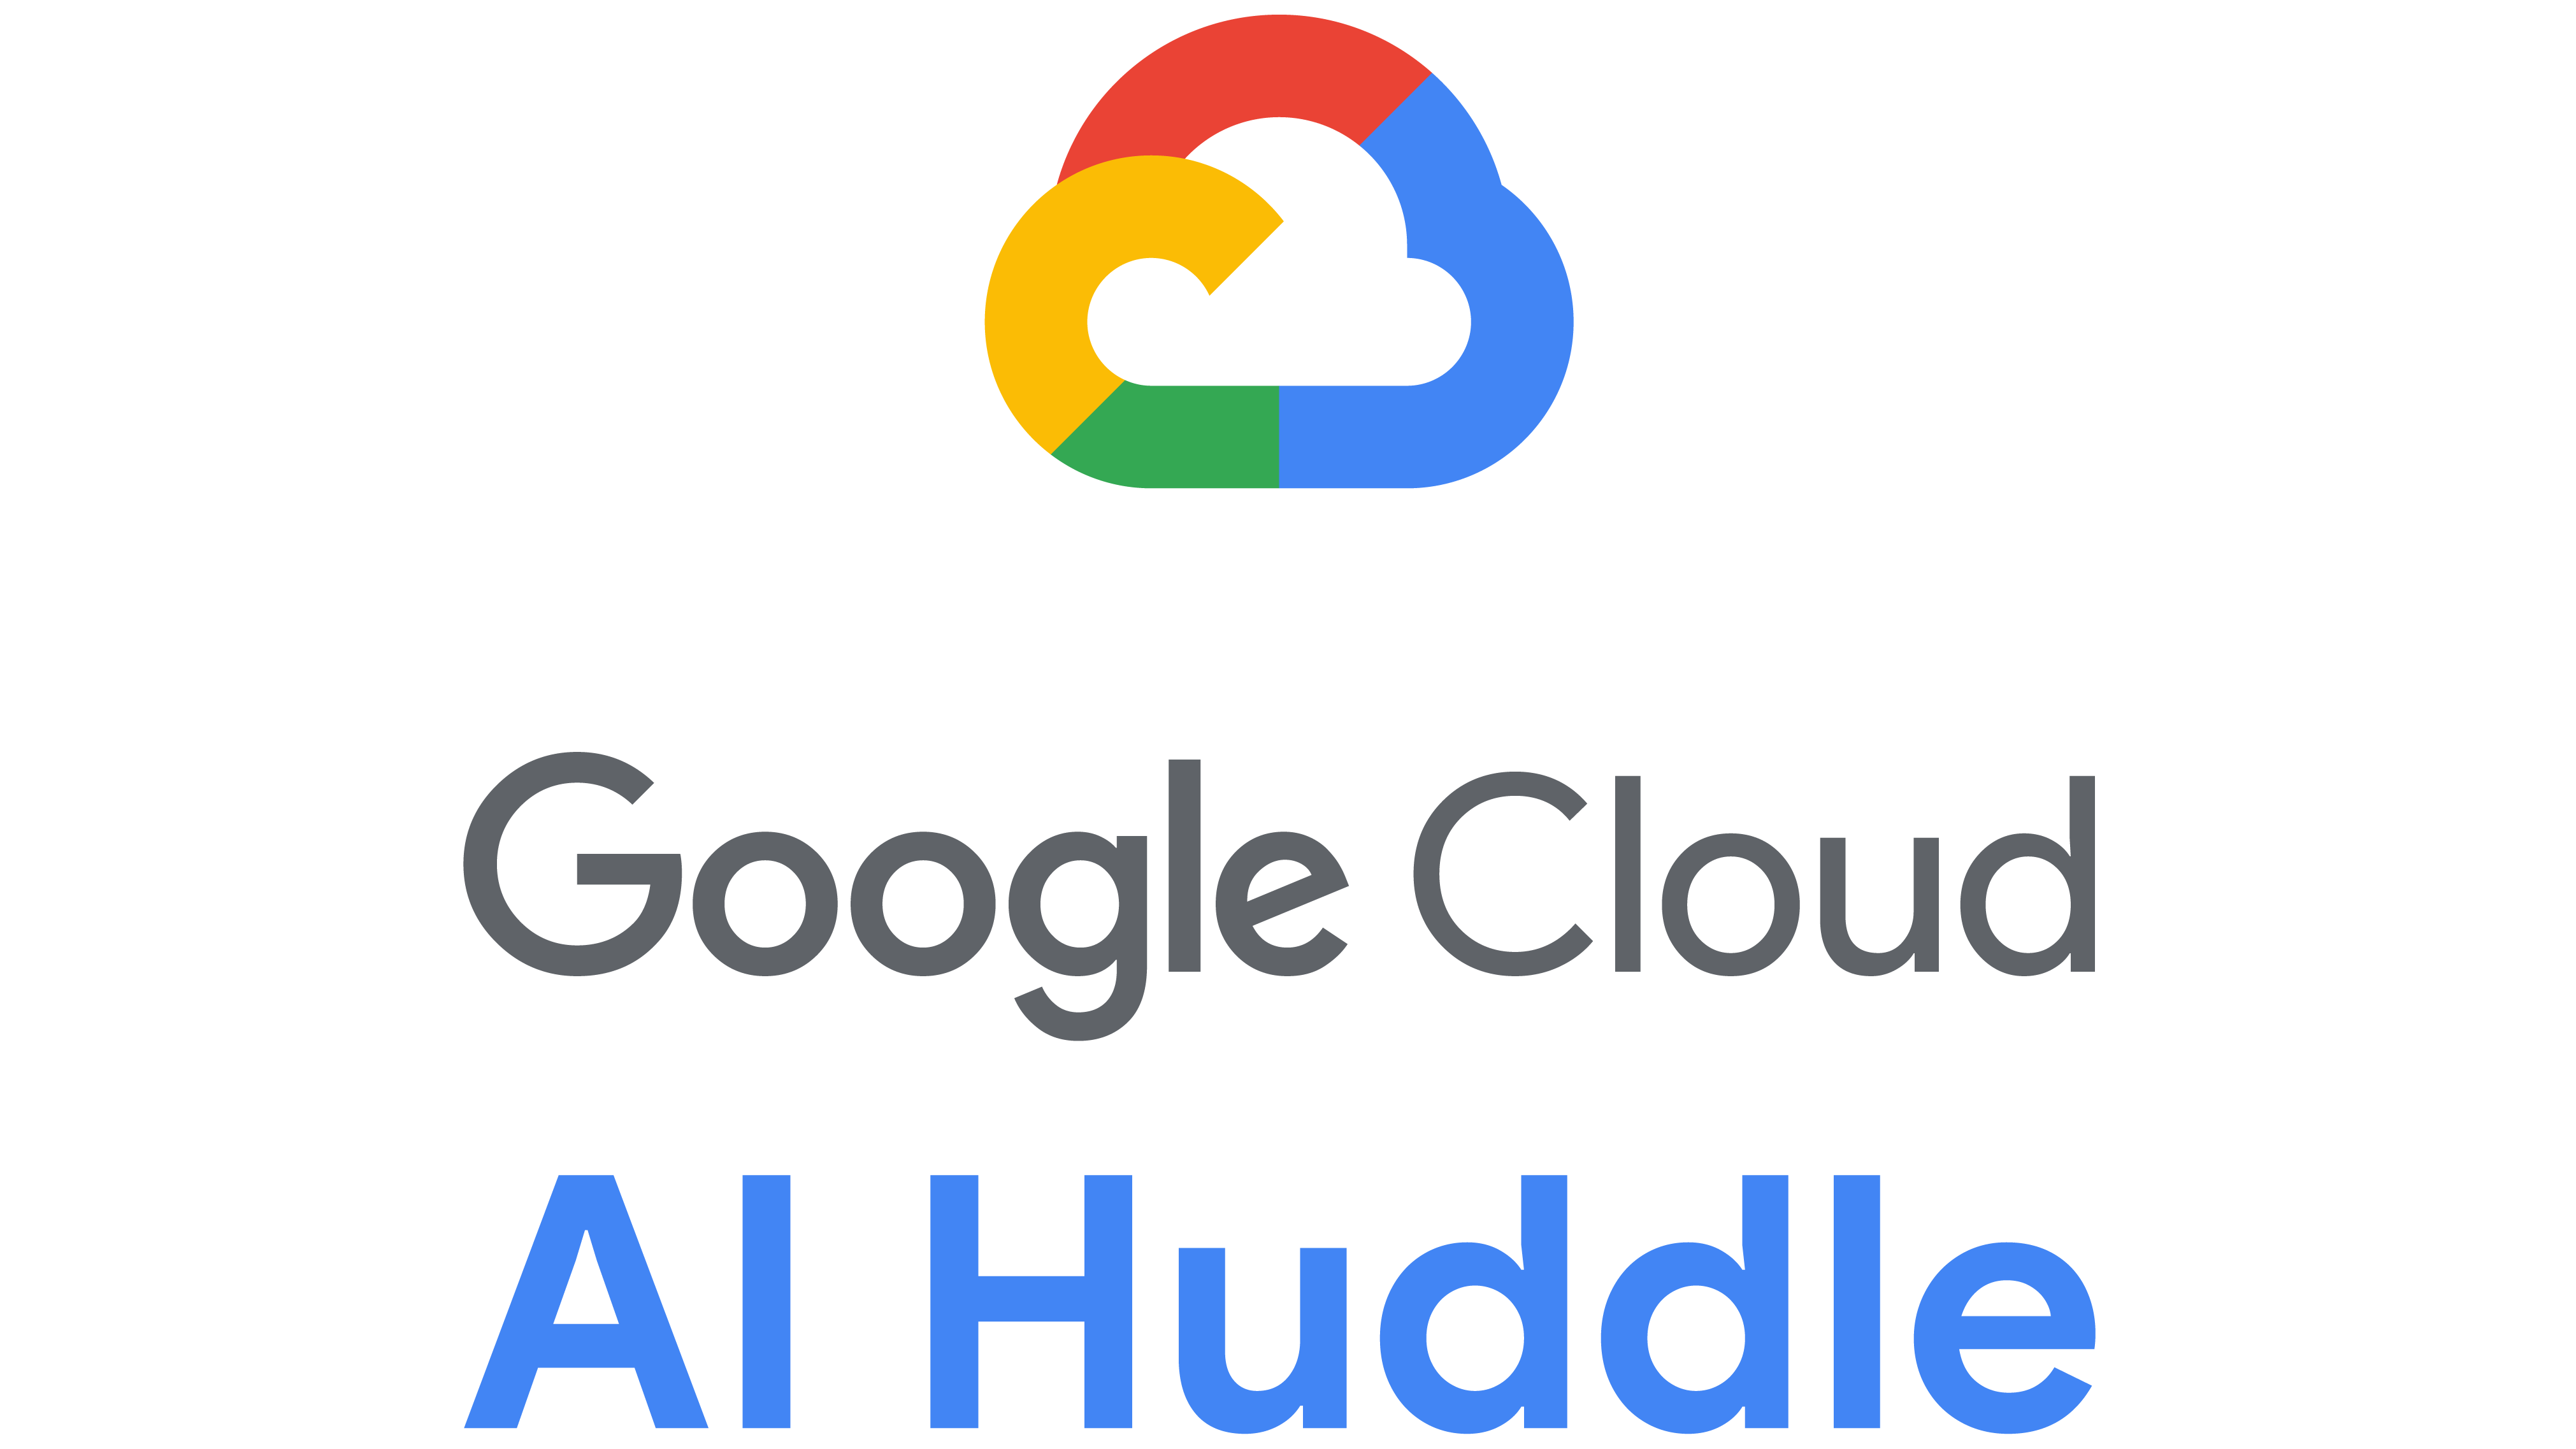 Google AI Huddle - Seattle